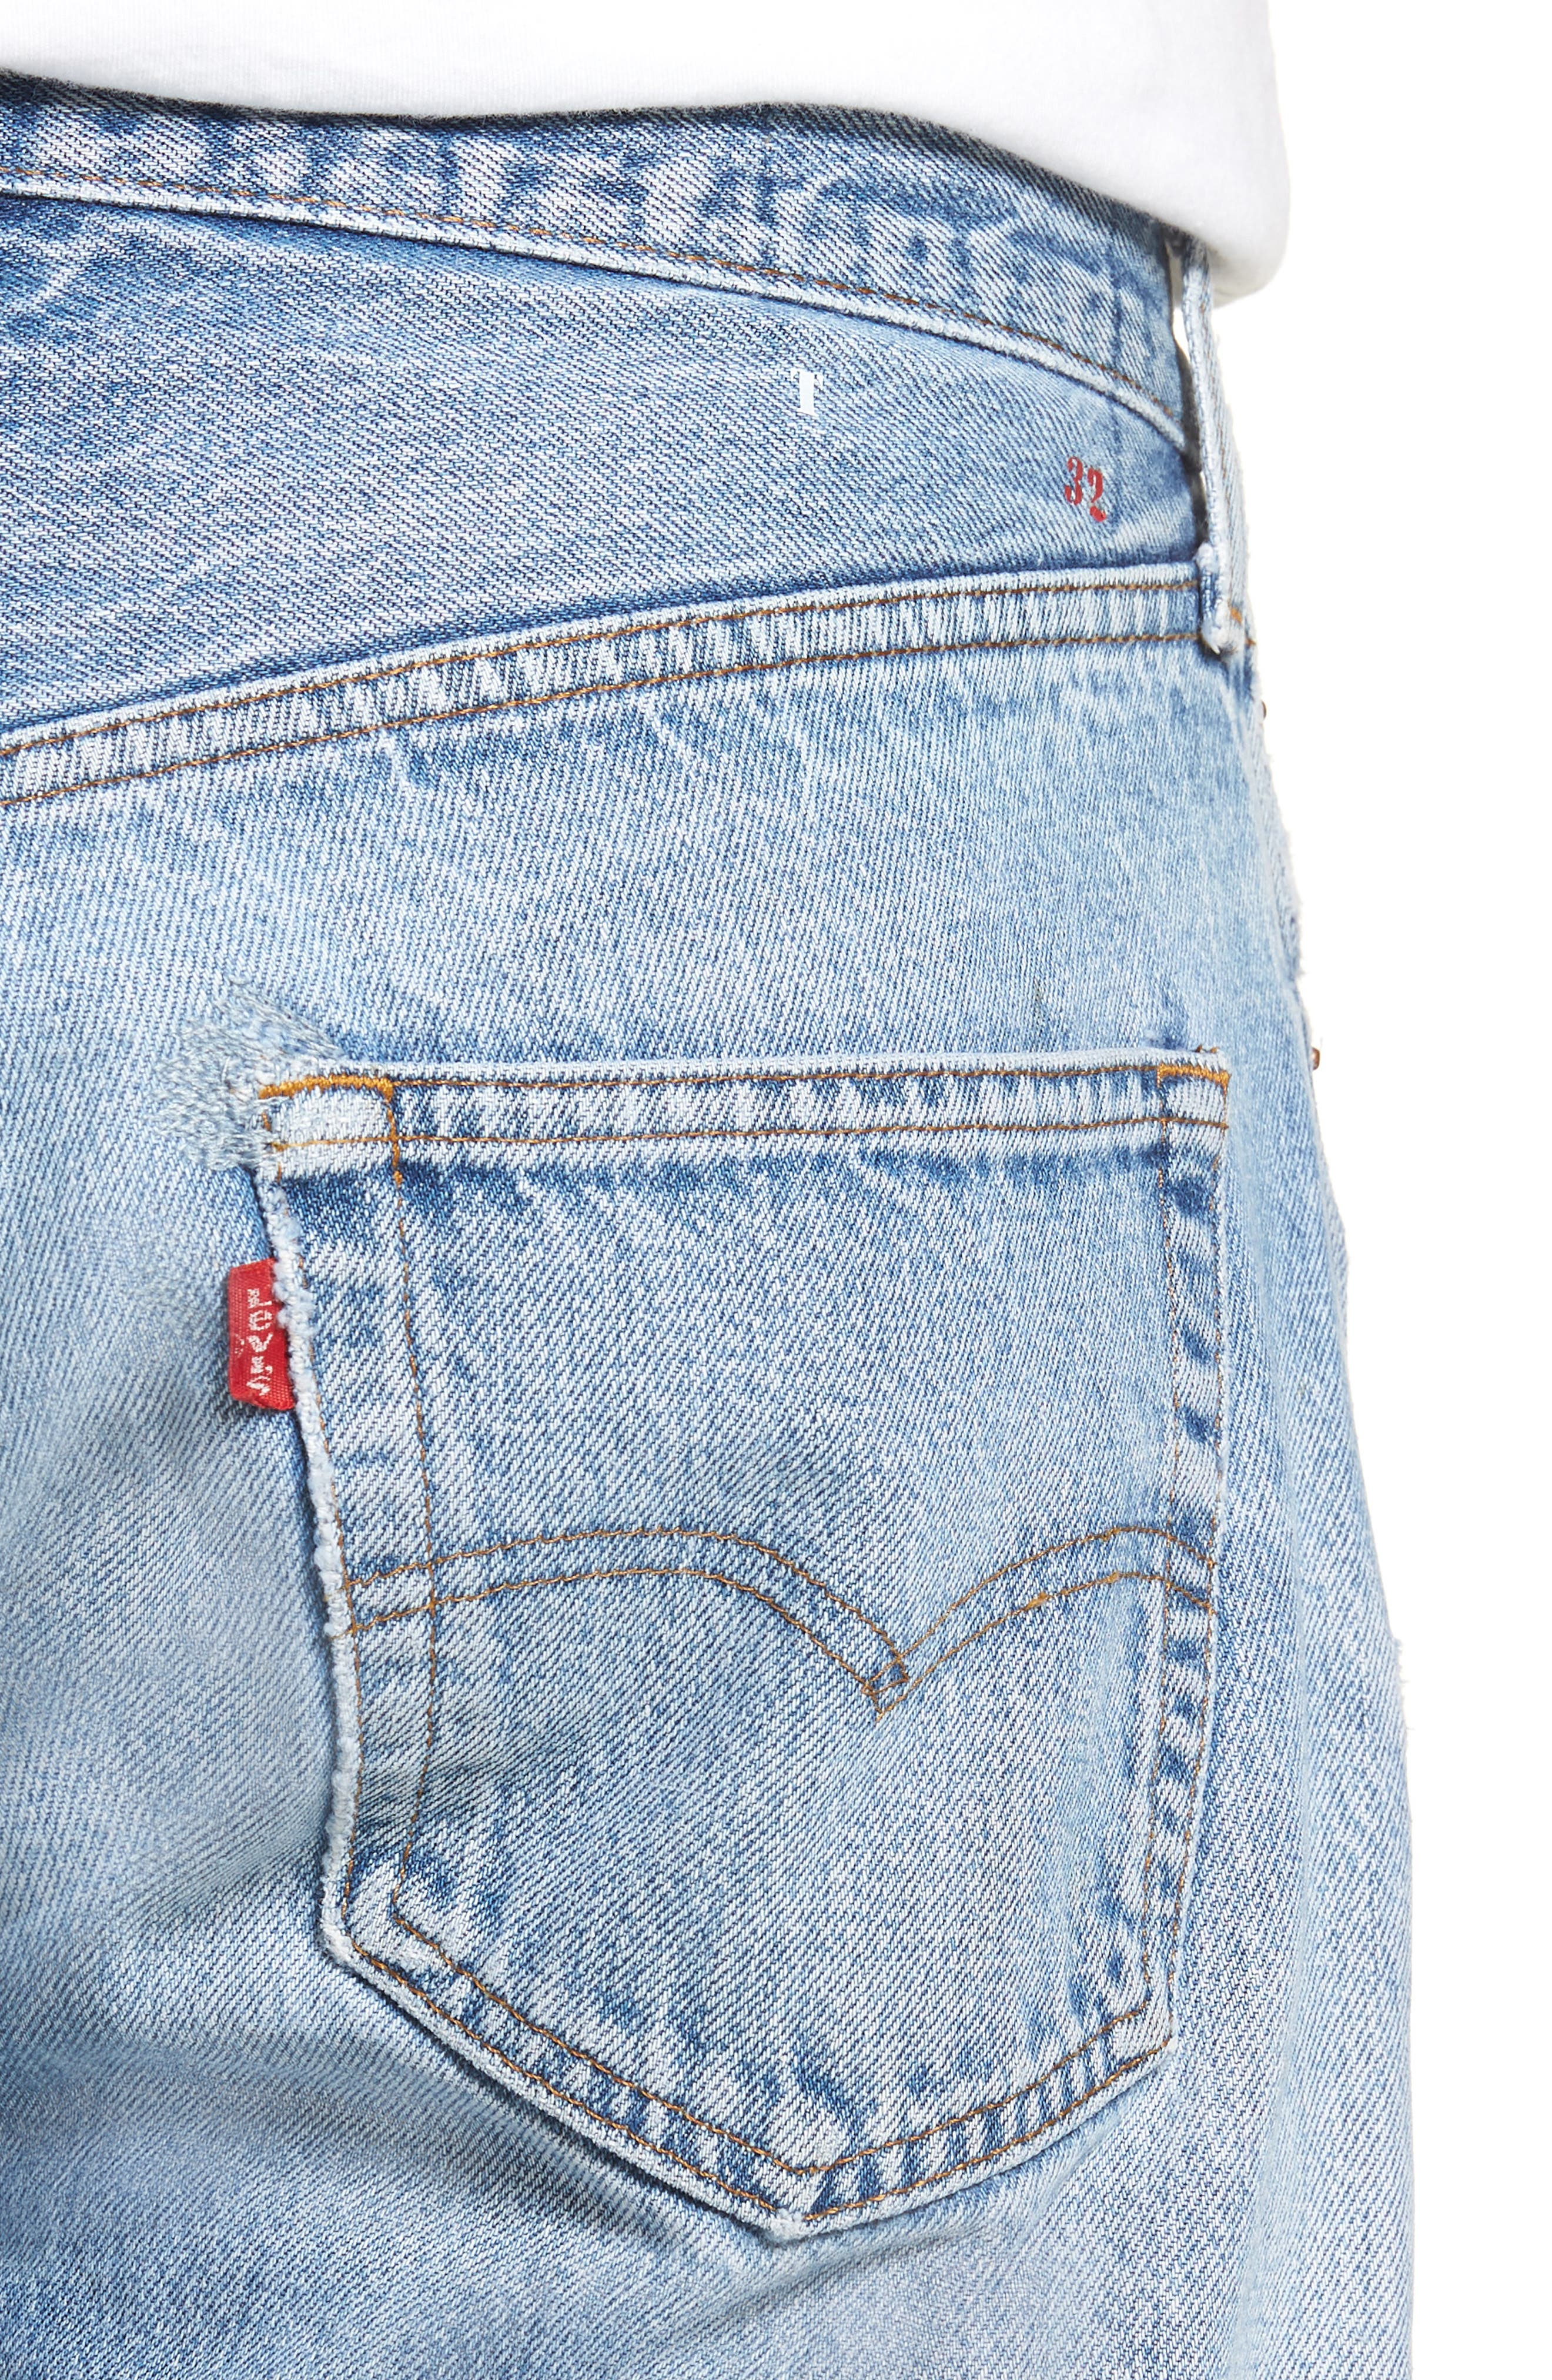 Authorized Vintage 501<sup>™</sup> Tapered Slim Fit Jeans,                             Alternate thumbnail 4, color,                             AV BLUE